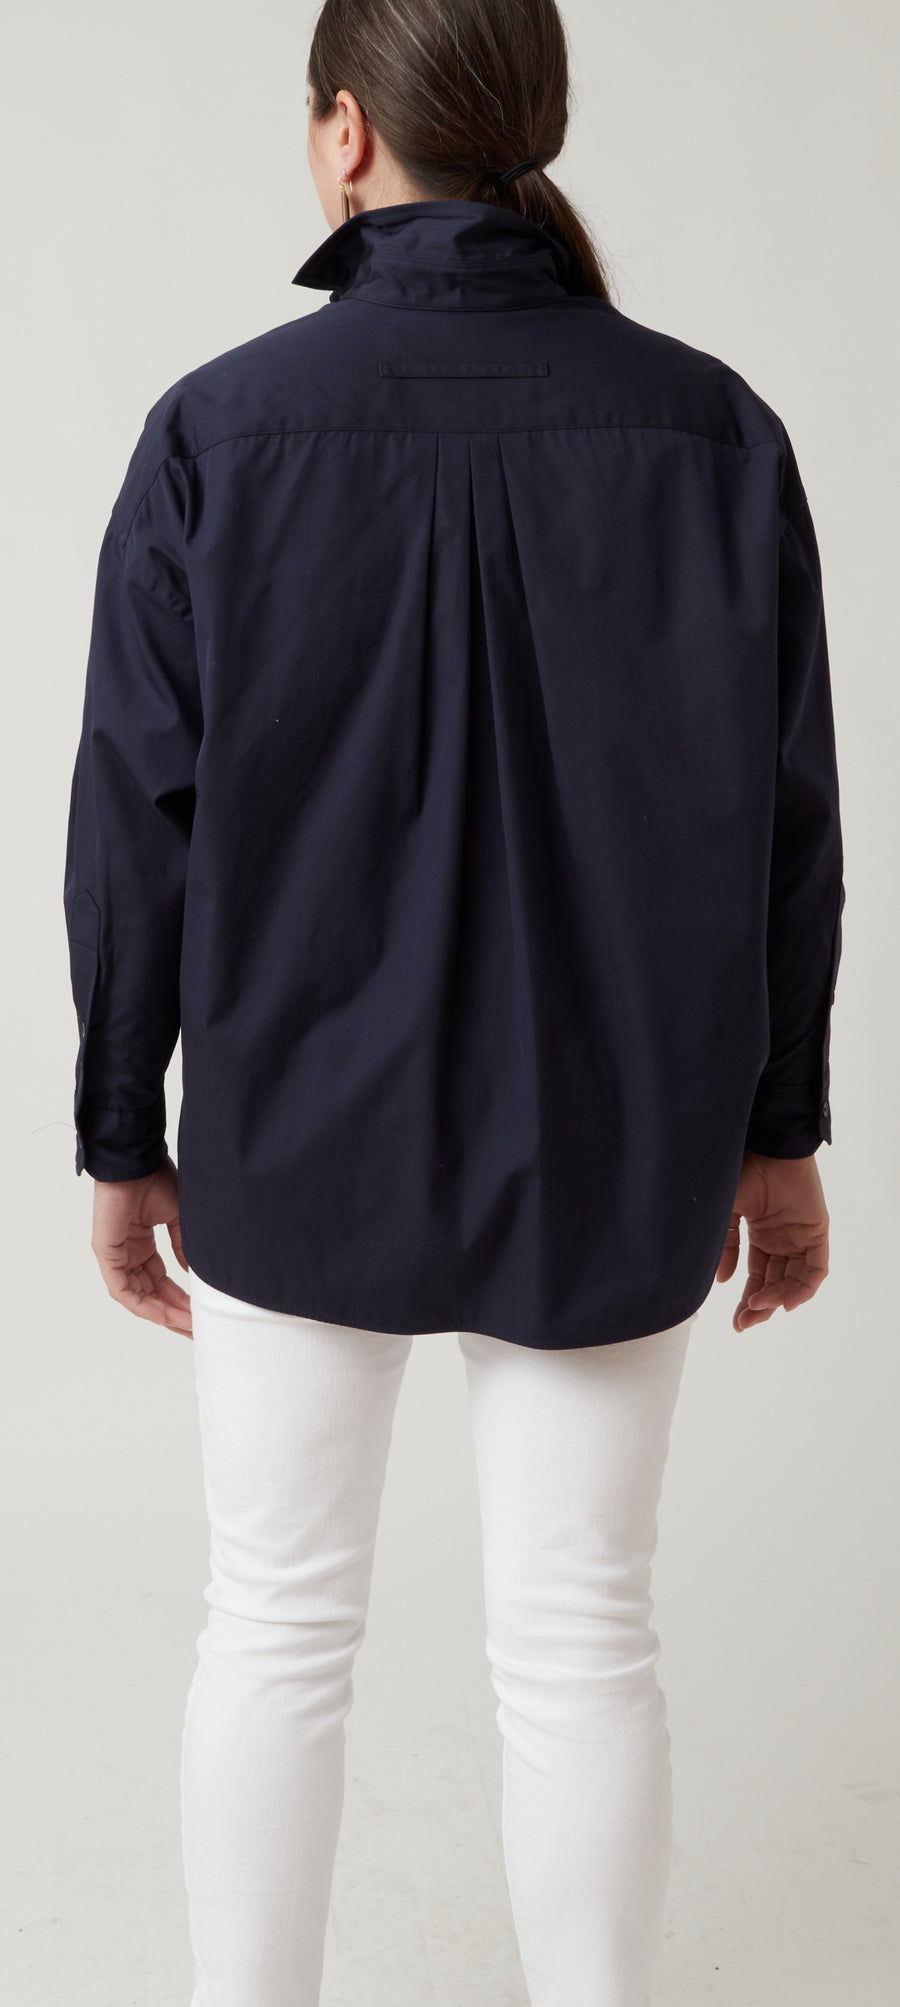 Ticca Placket Top